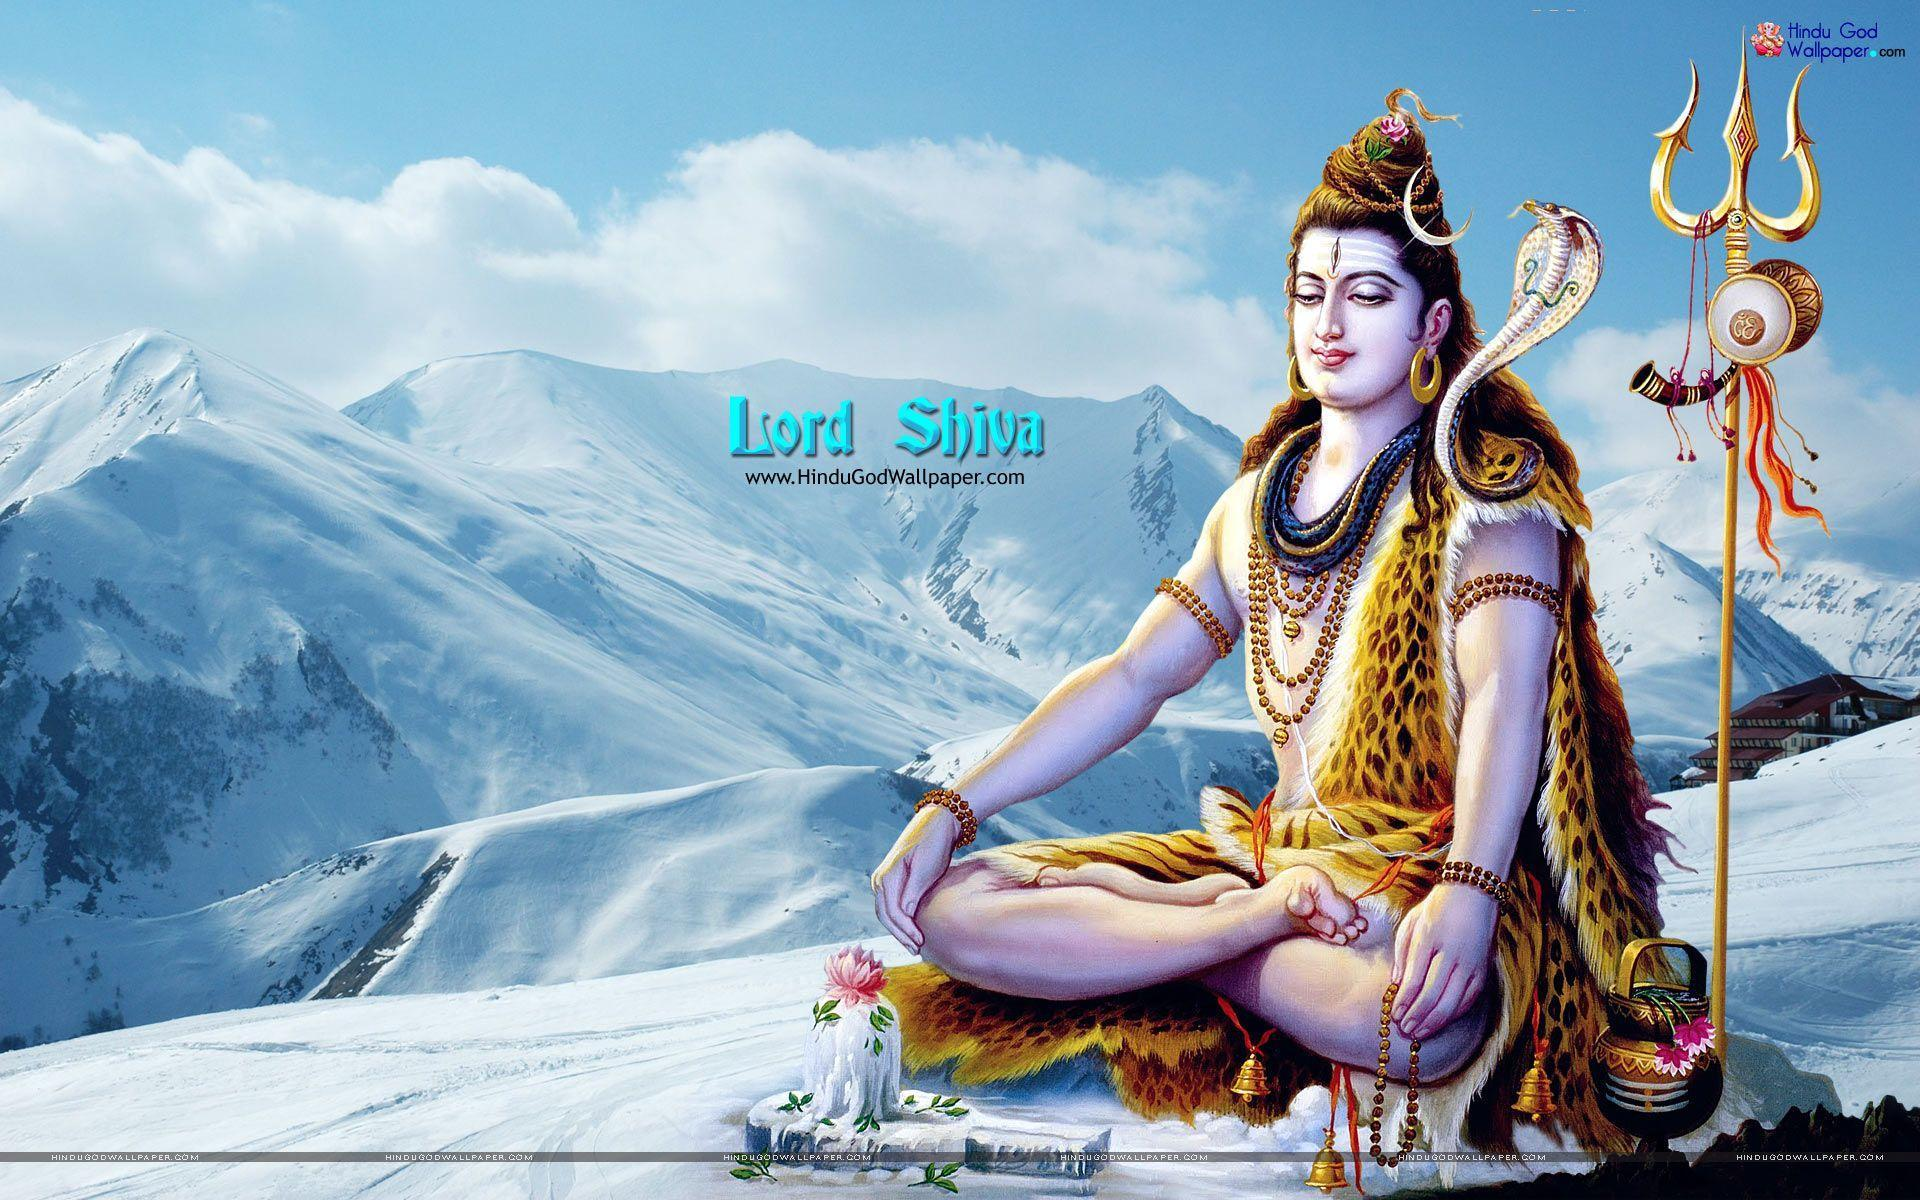 Lord Shiva Wallpapers 3d: Lord Shiva Wallpapers